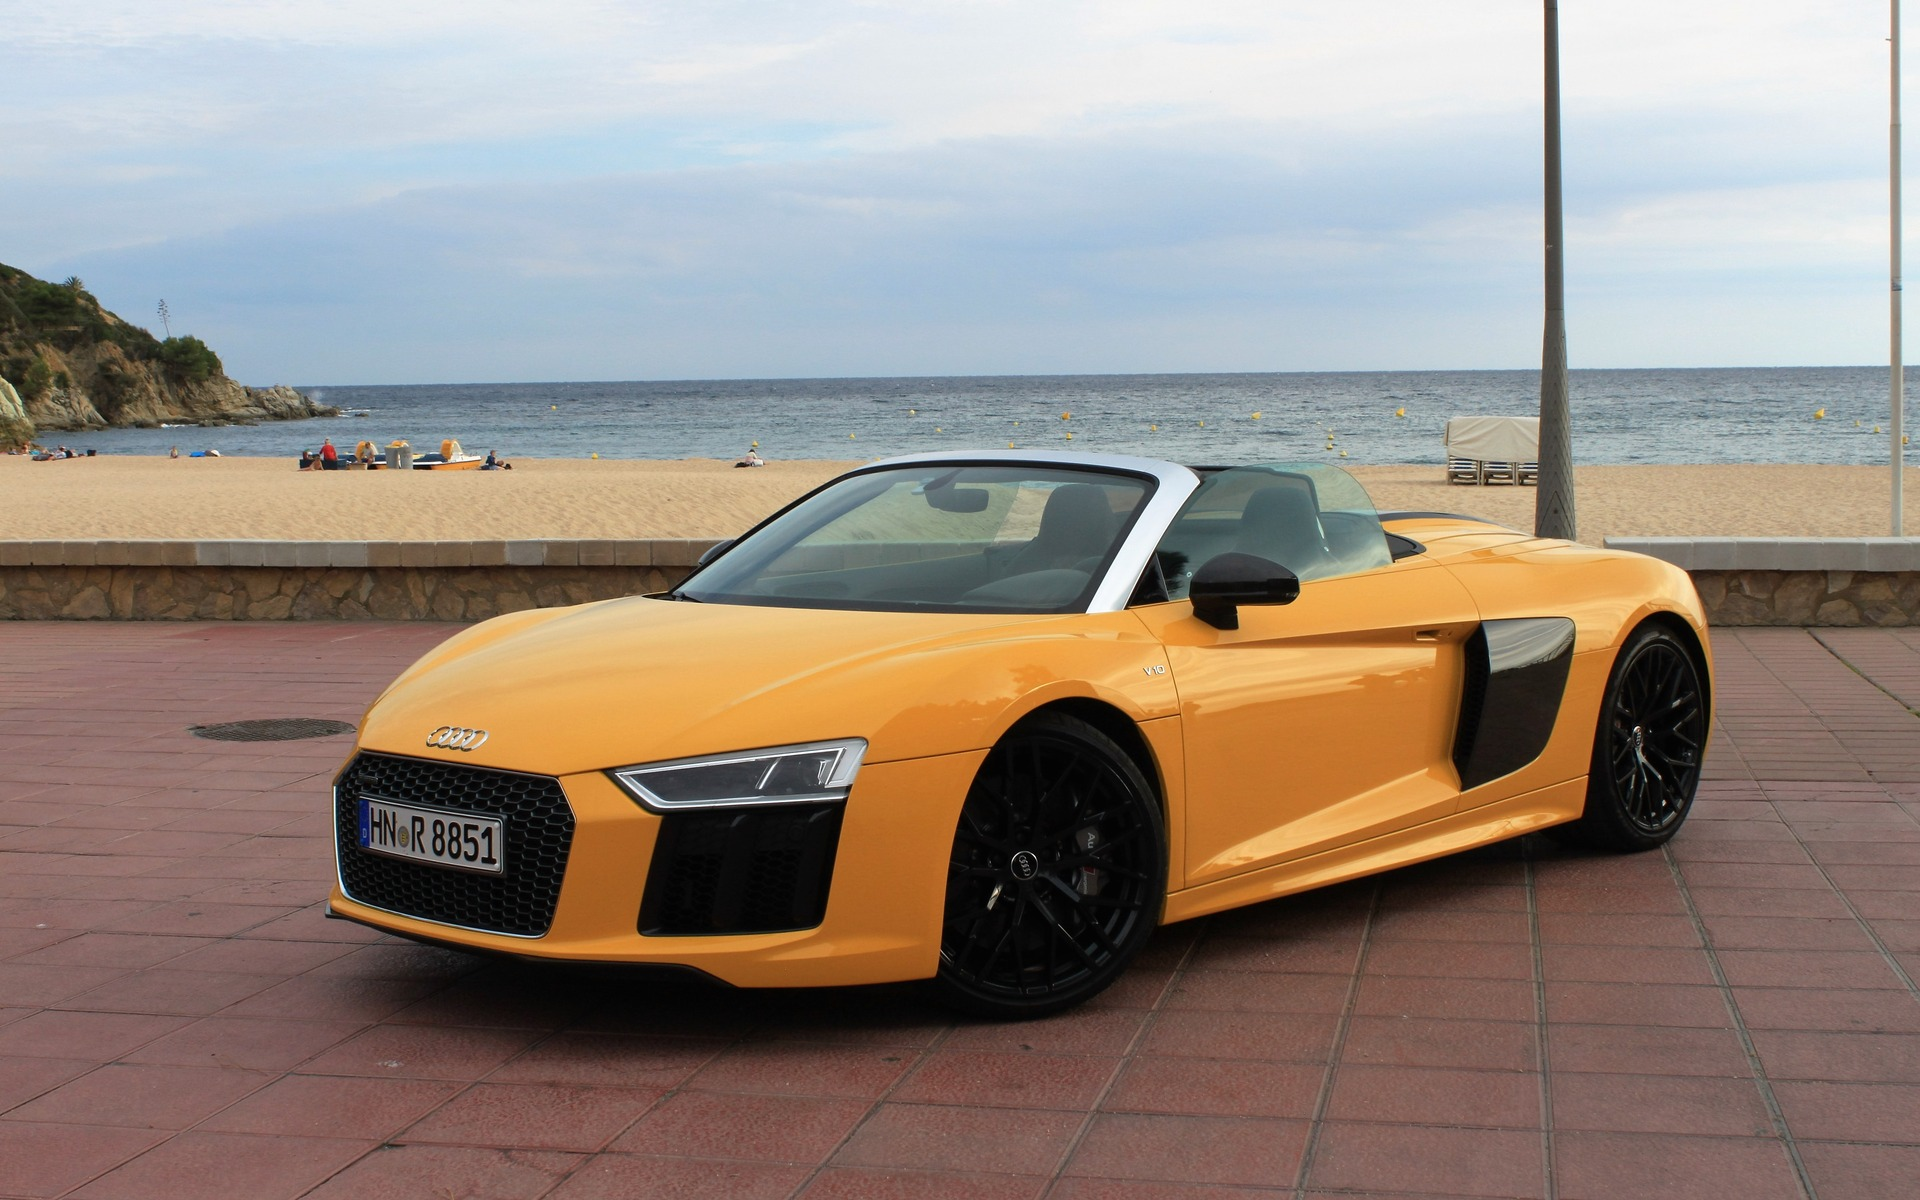 2017 Audi R8 Spyder Faster Lighter And More Dynamic The Car Guide